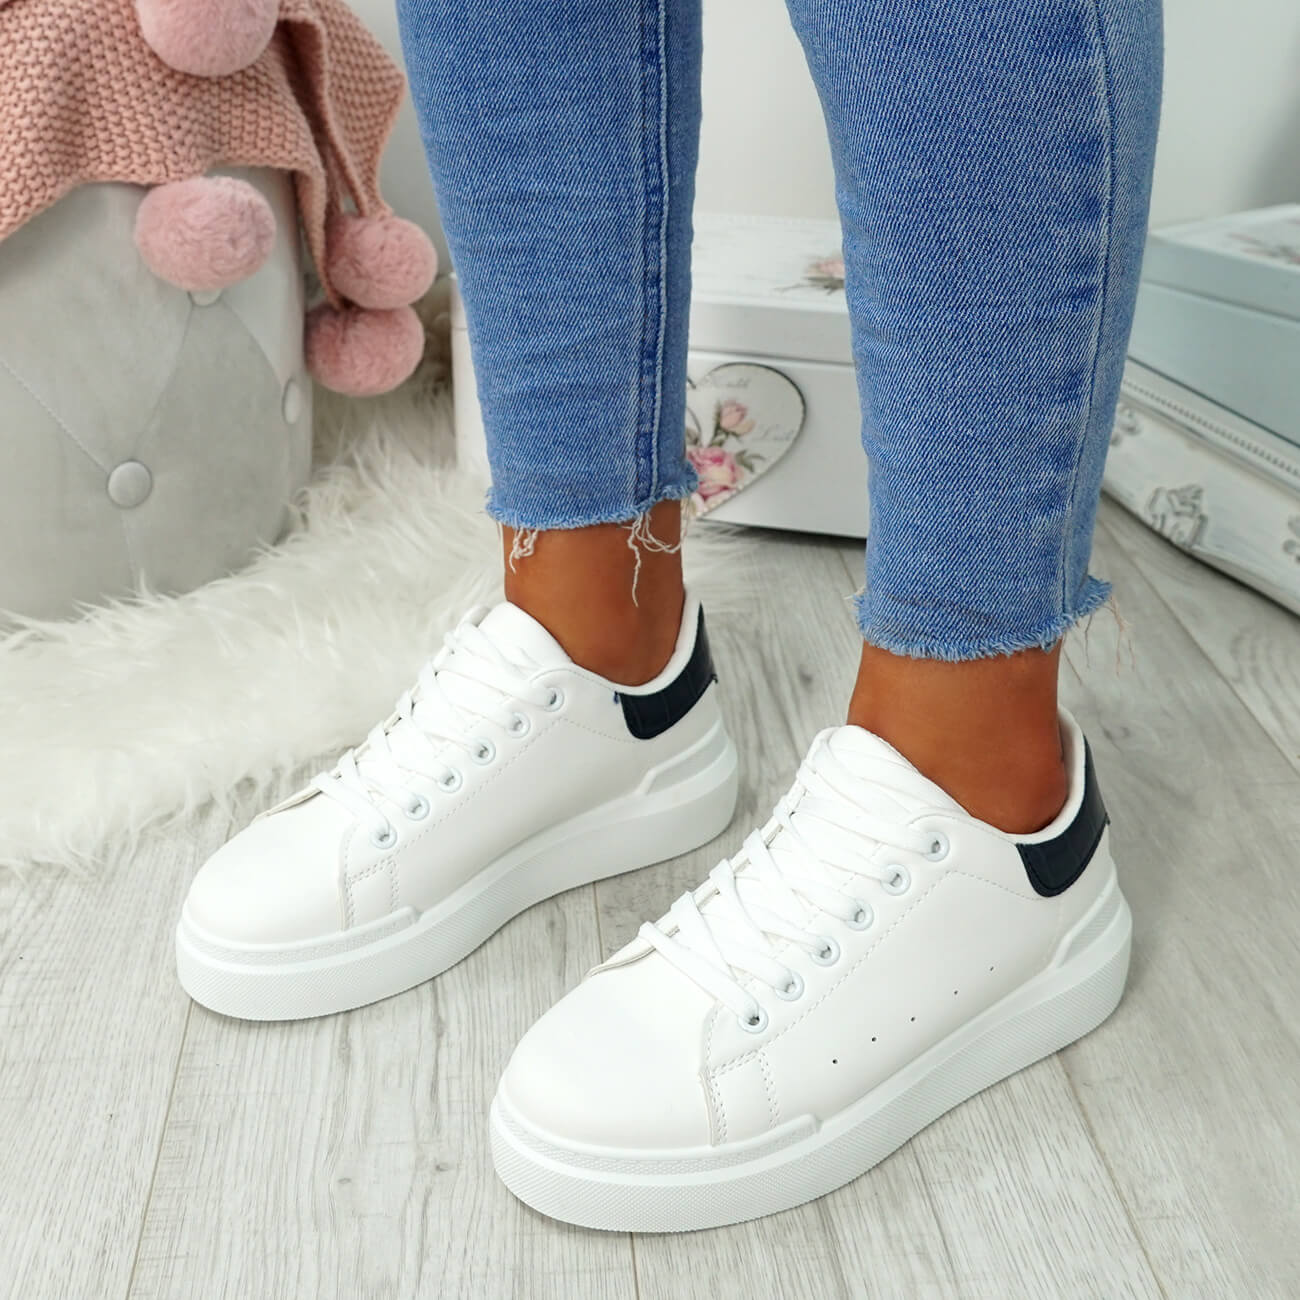 WOMENS-LADIES-LACE-UP-PLIMSOLL-SNEAKERS-CROC-SNAKE-TRAINERS-CASUAL-SHOES-SIZE thumbnail 40